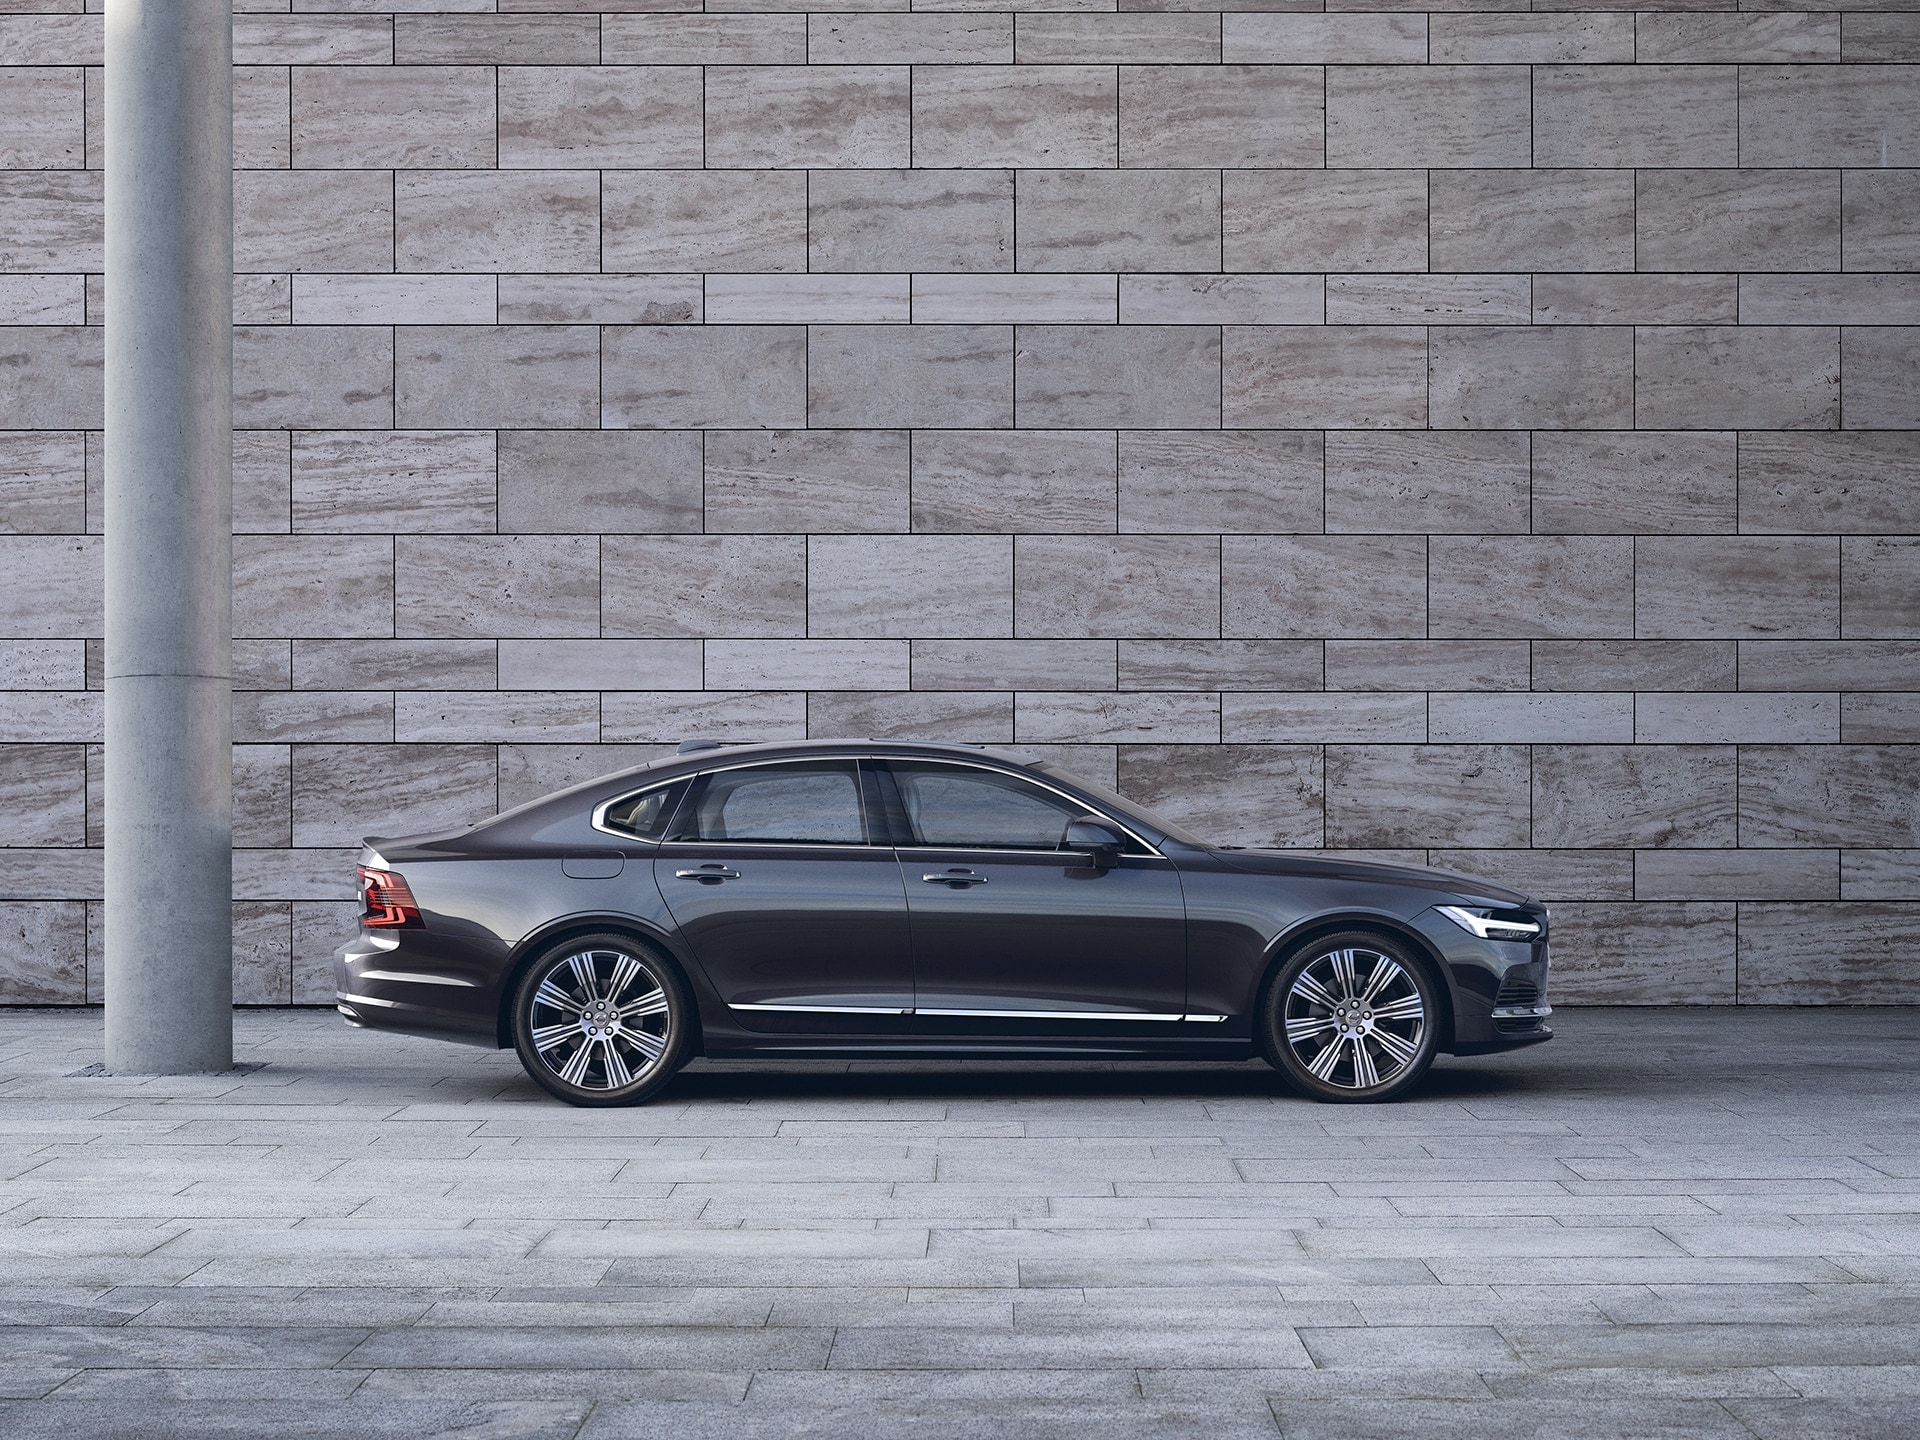 A dark Volvo S90 is parked in front of a grey wall.